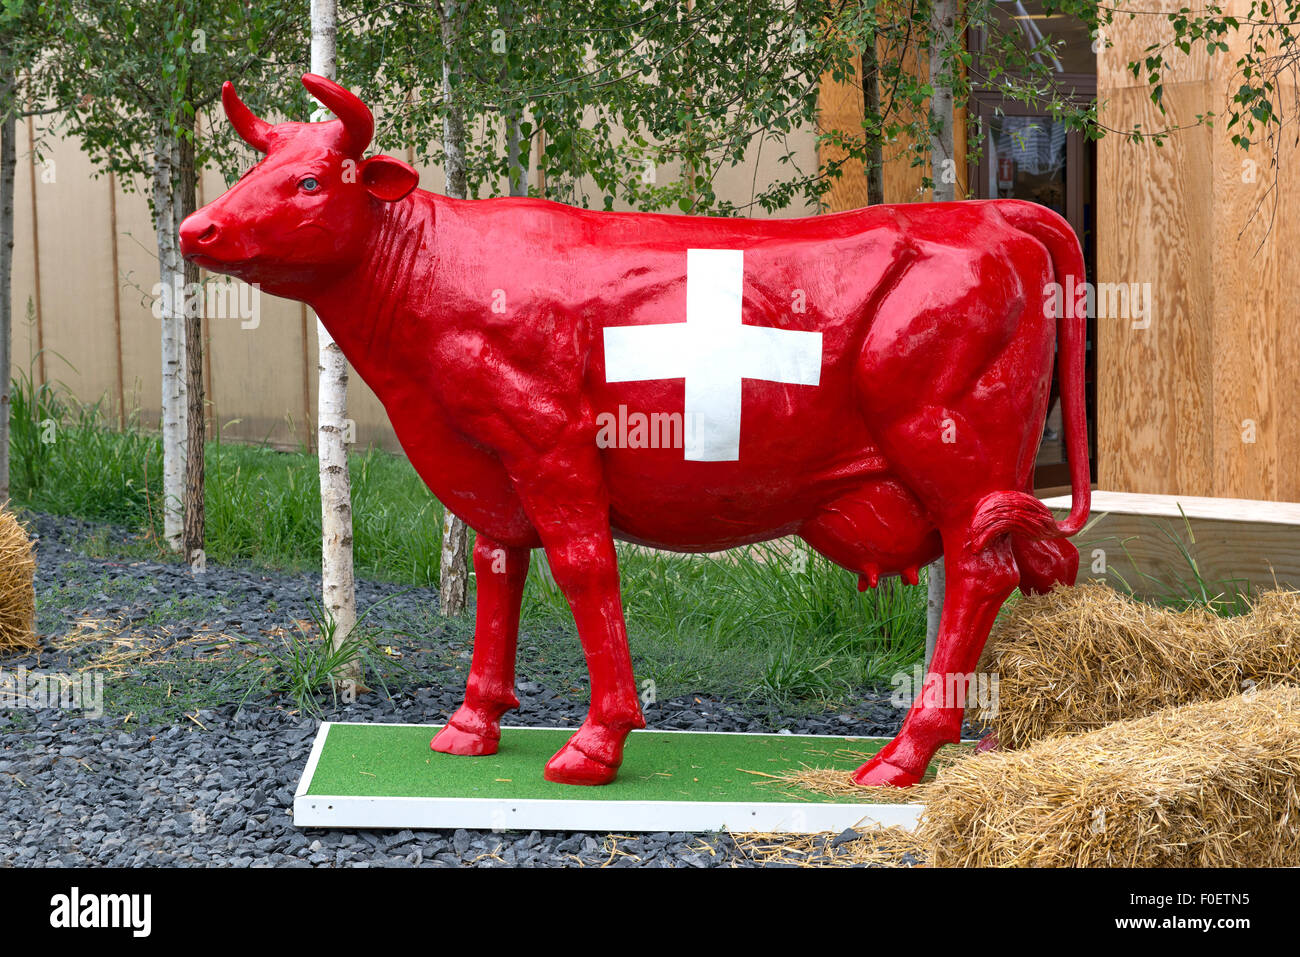 Red Swiss cow statue - Stock Image